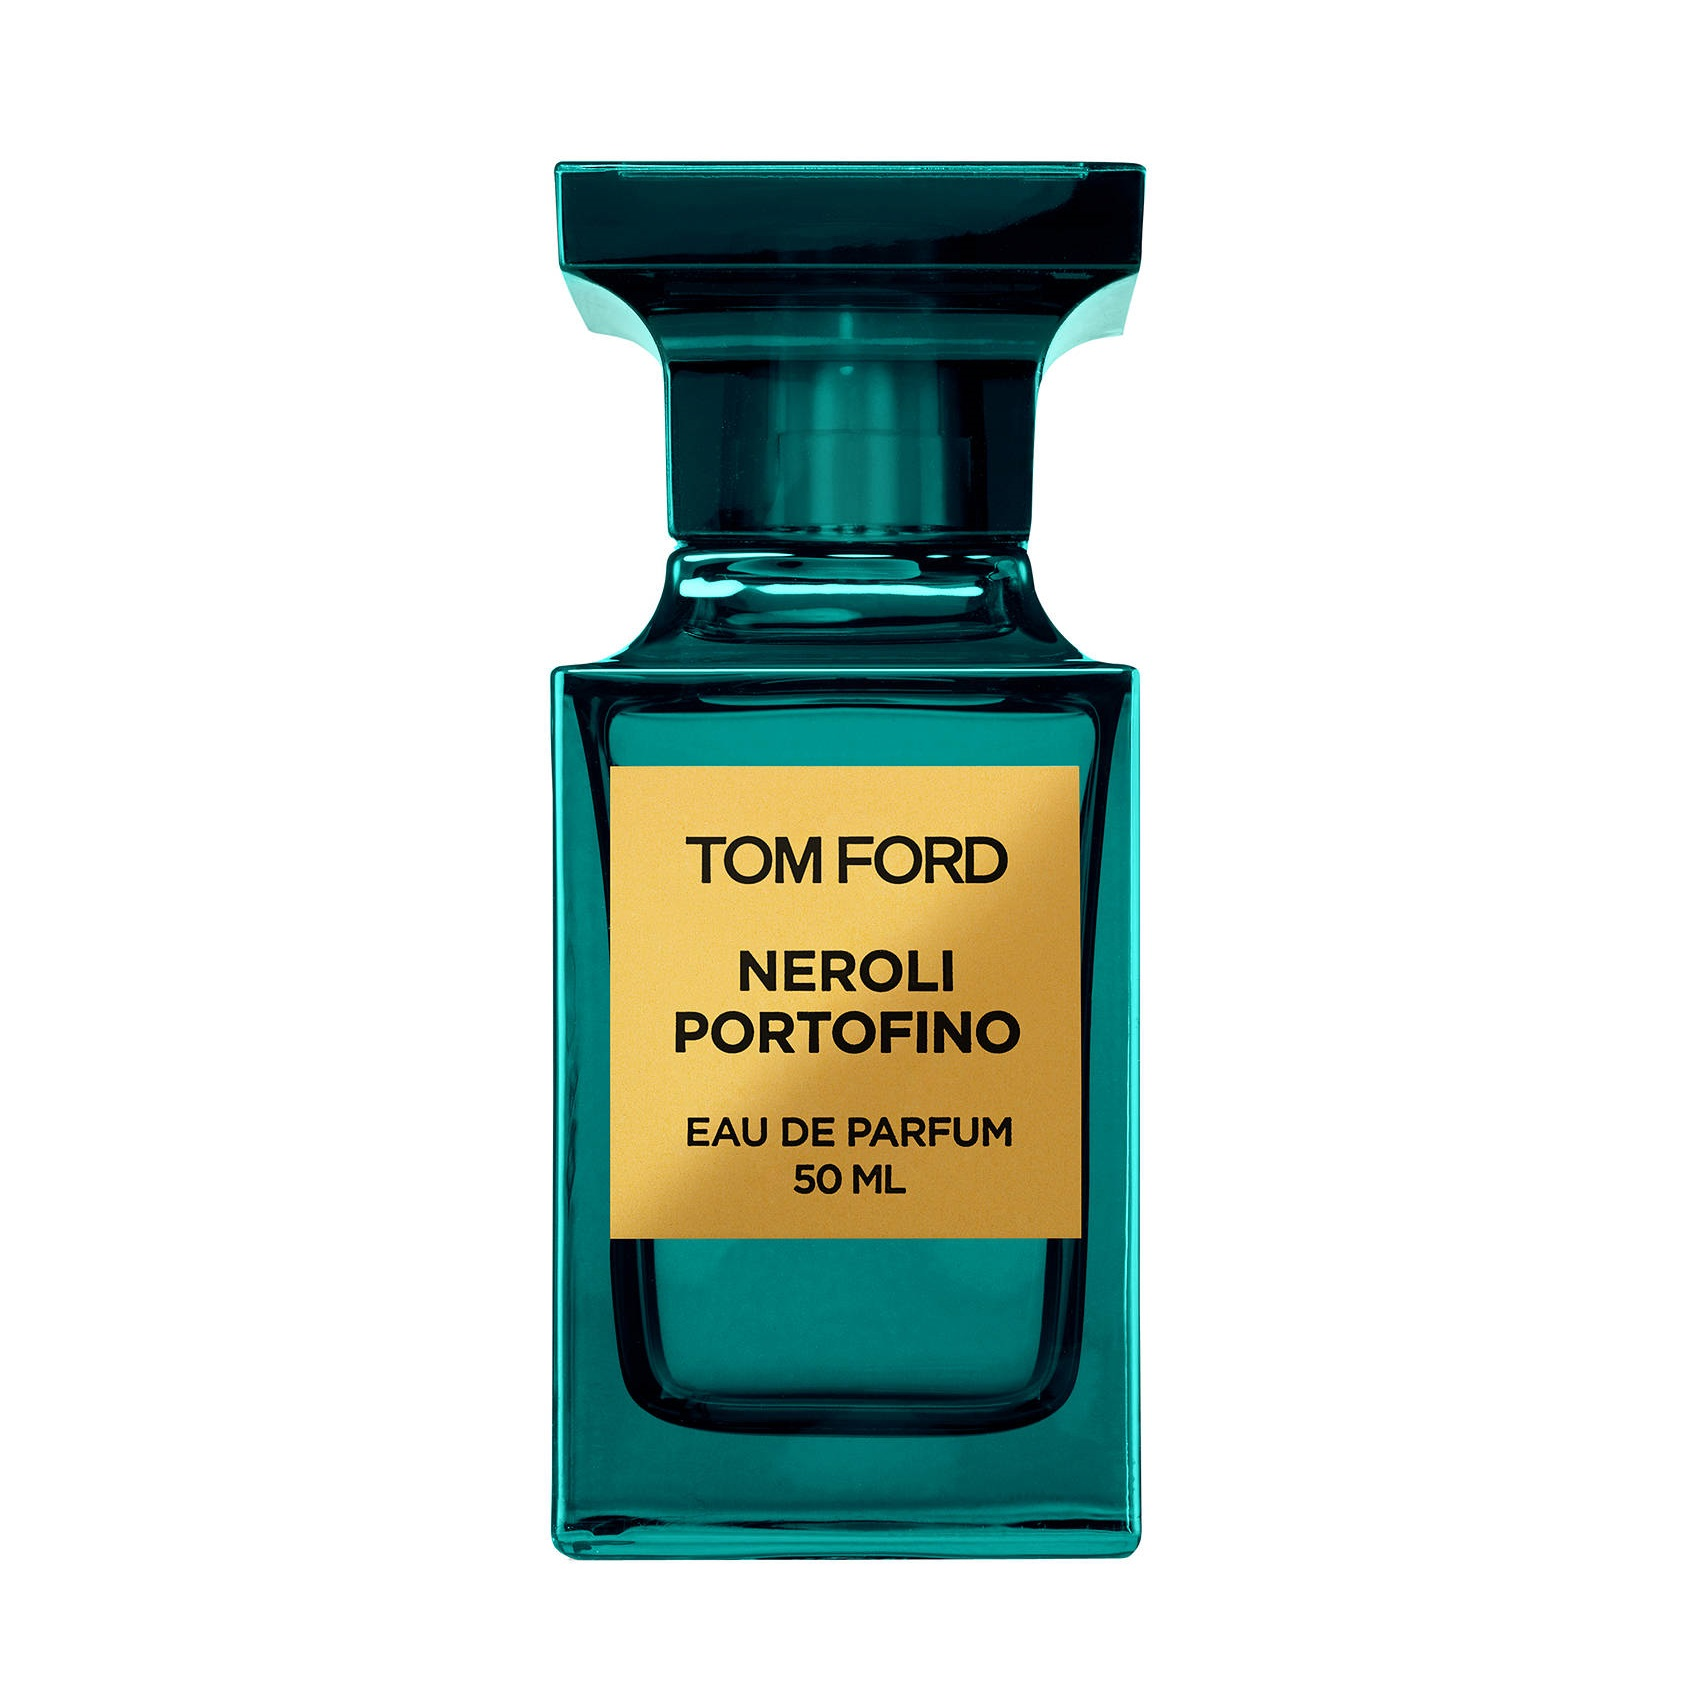 Tom Ford Neroli Portofino - Eau De Parfum For Men and Women 50 ml